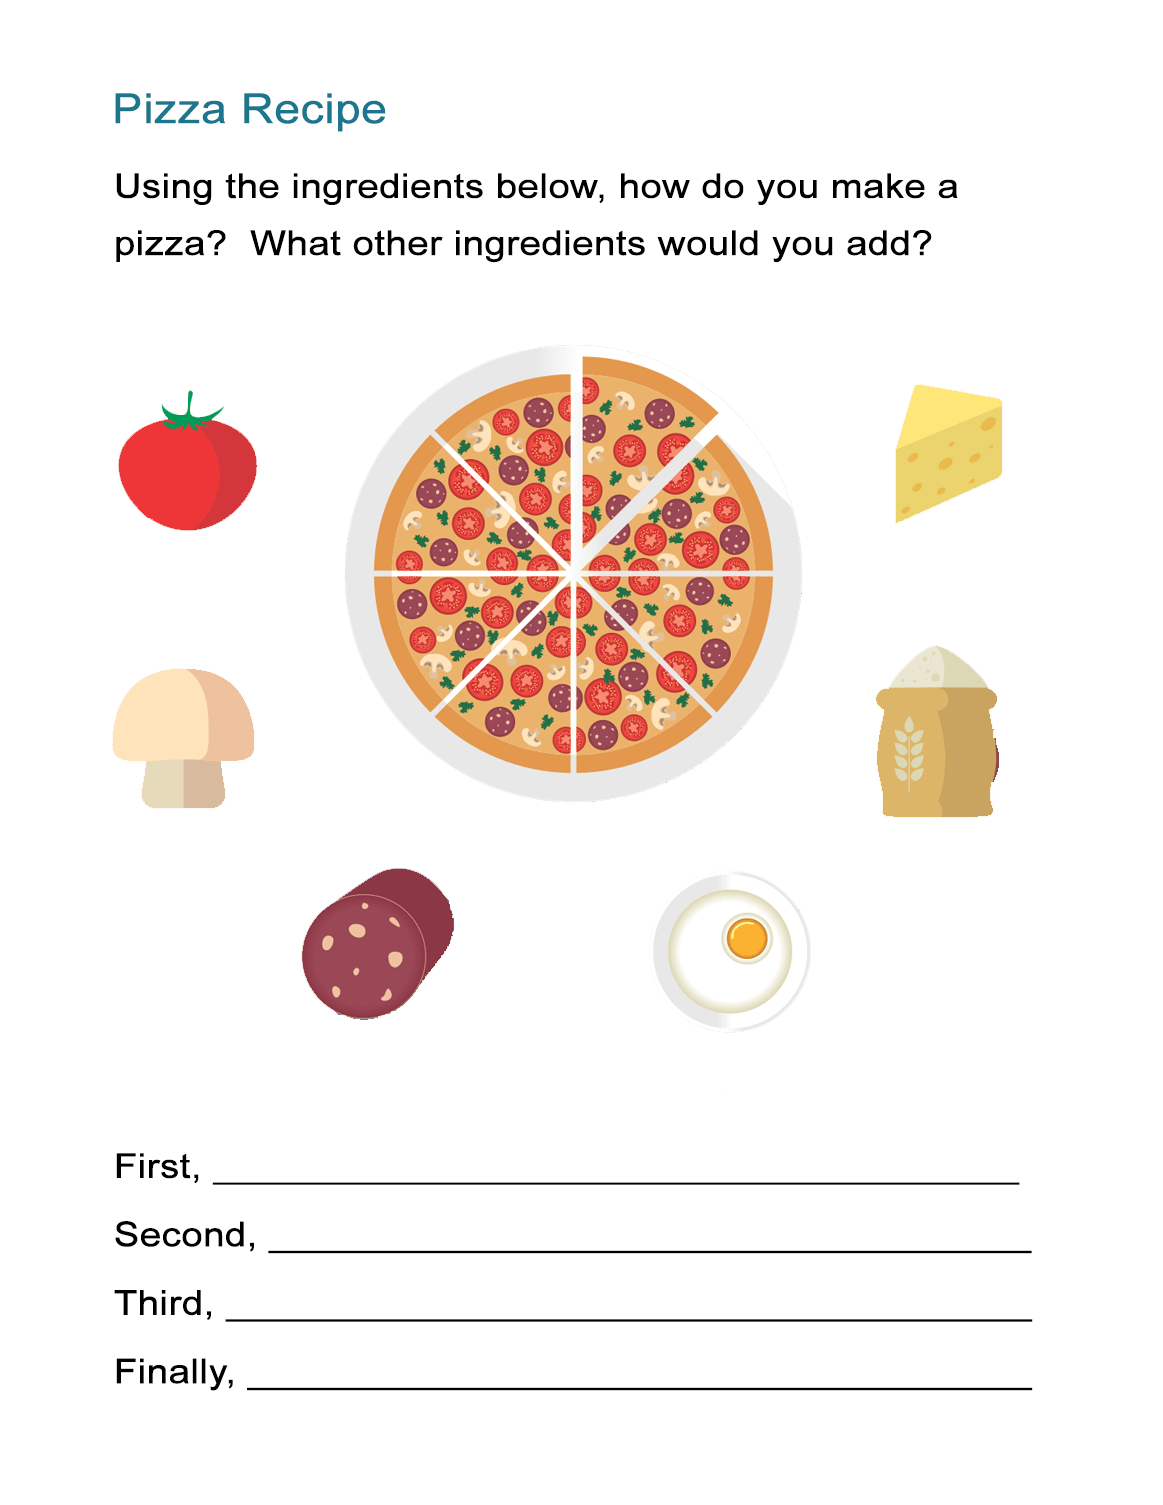 worksheet Transition Words Worksheet transition words worksheet the pizza recipe cooking instructions worksheet